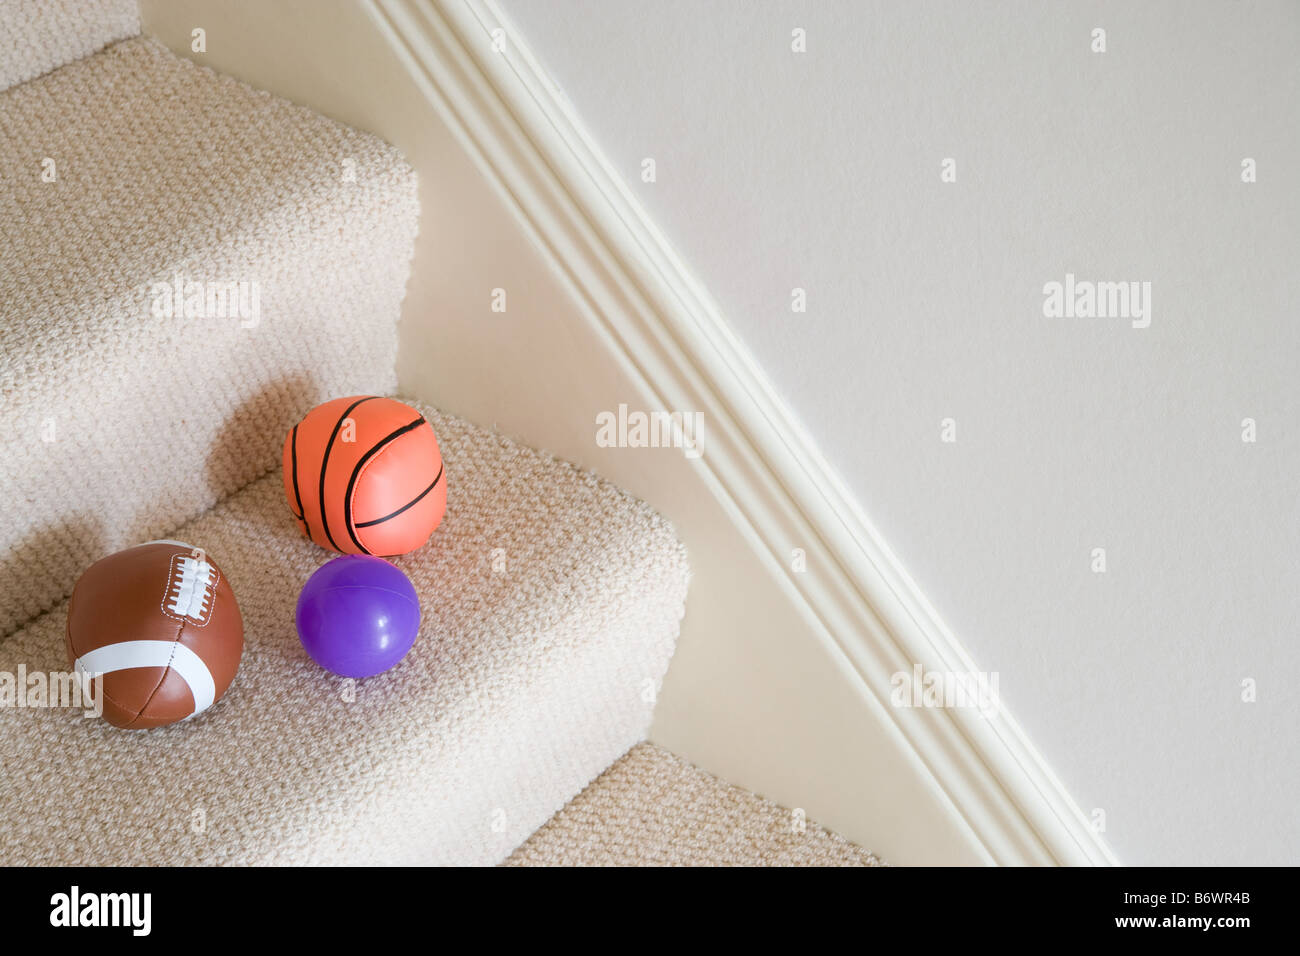 Balls on staircase - Stock Image